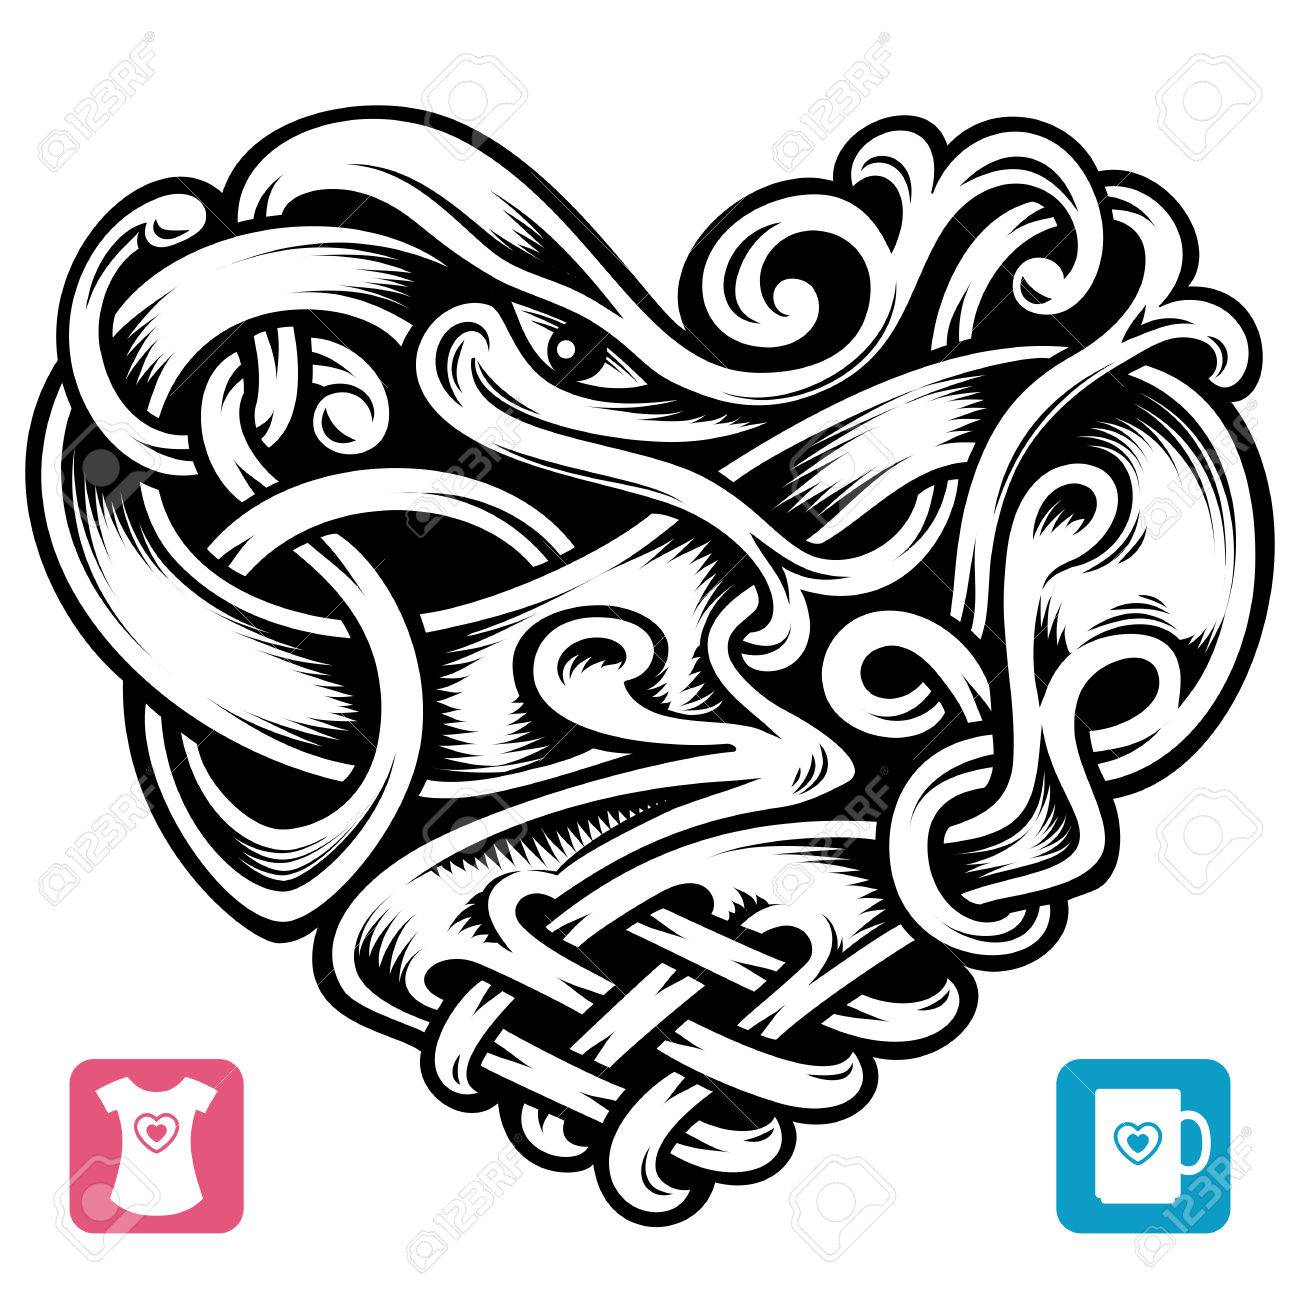 5568 celtic knot stock vector illustration and royalty free celtic vector celtic pattern in the shape of heart biocorpaavc Gallery